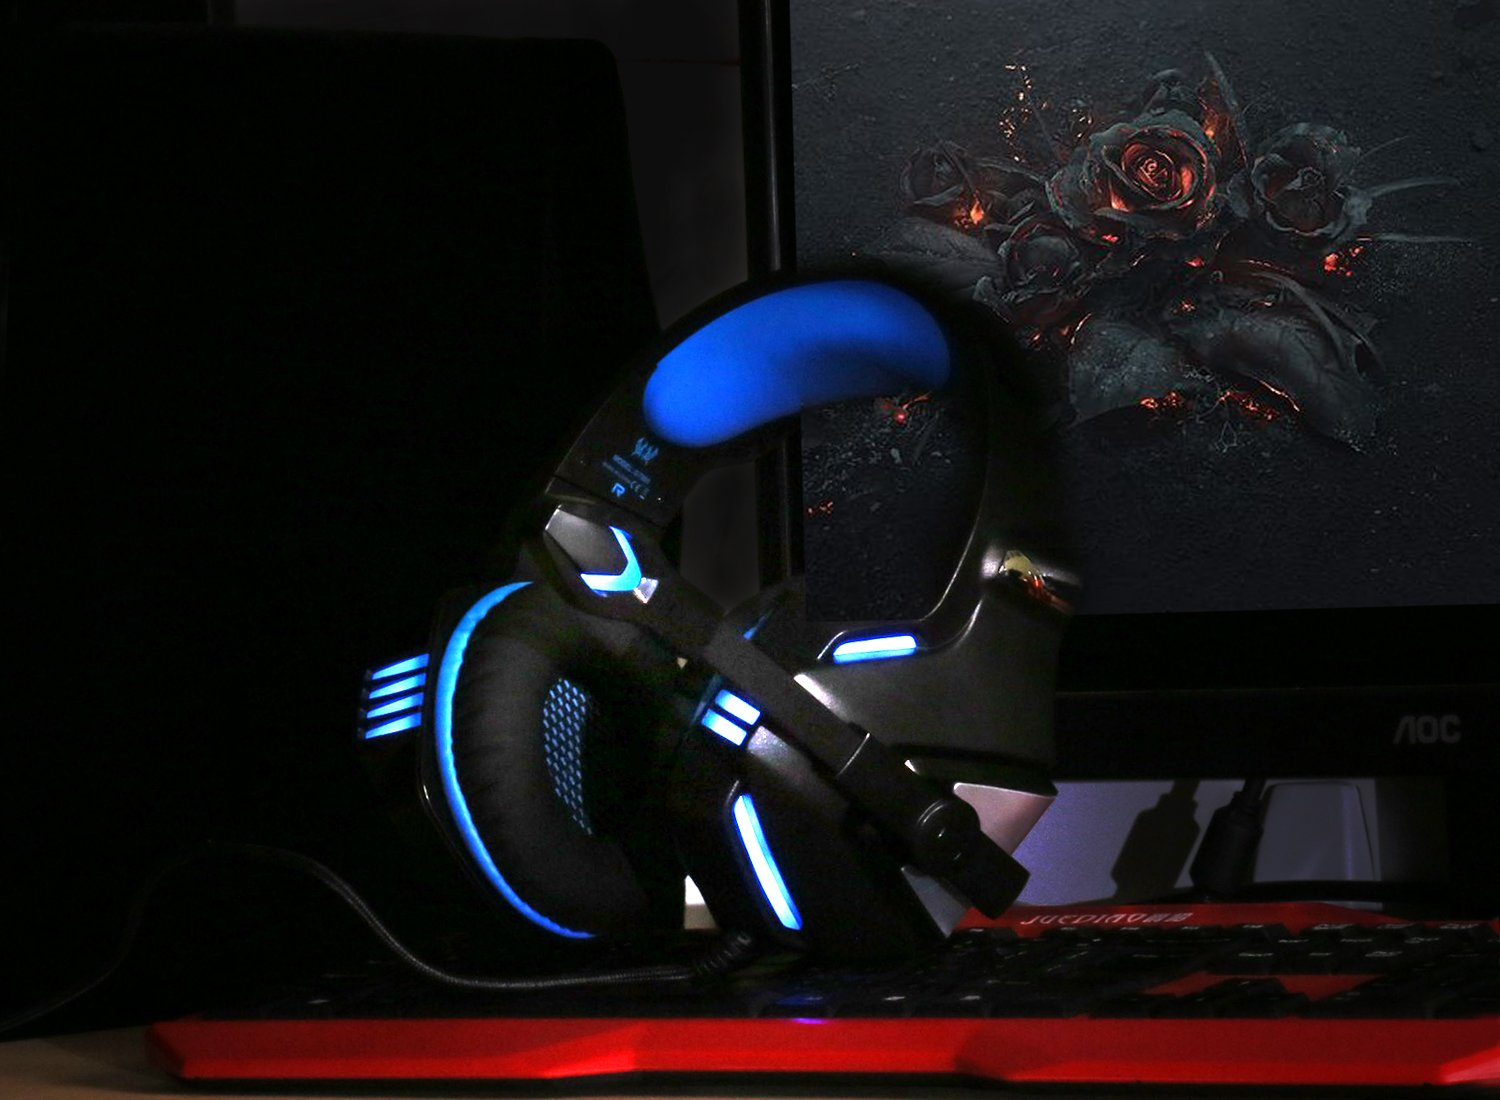 KJ-KayJI Gaming Headset for PS4 Xbox One Over Ear Gaming Headphones with Mic Stereo Bass Surround Noise Reduction,LED Lights and Volume Control for Laptop PC Mac IPad Computer Smartphones Xbox (Blue) by KJ-KayJI (Image #7)